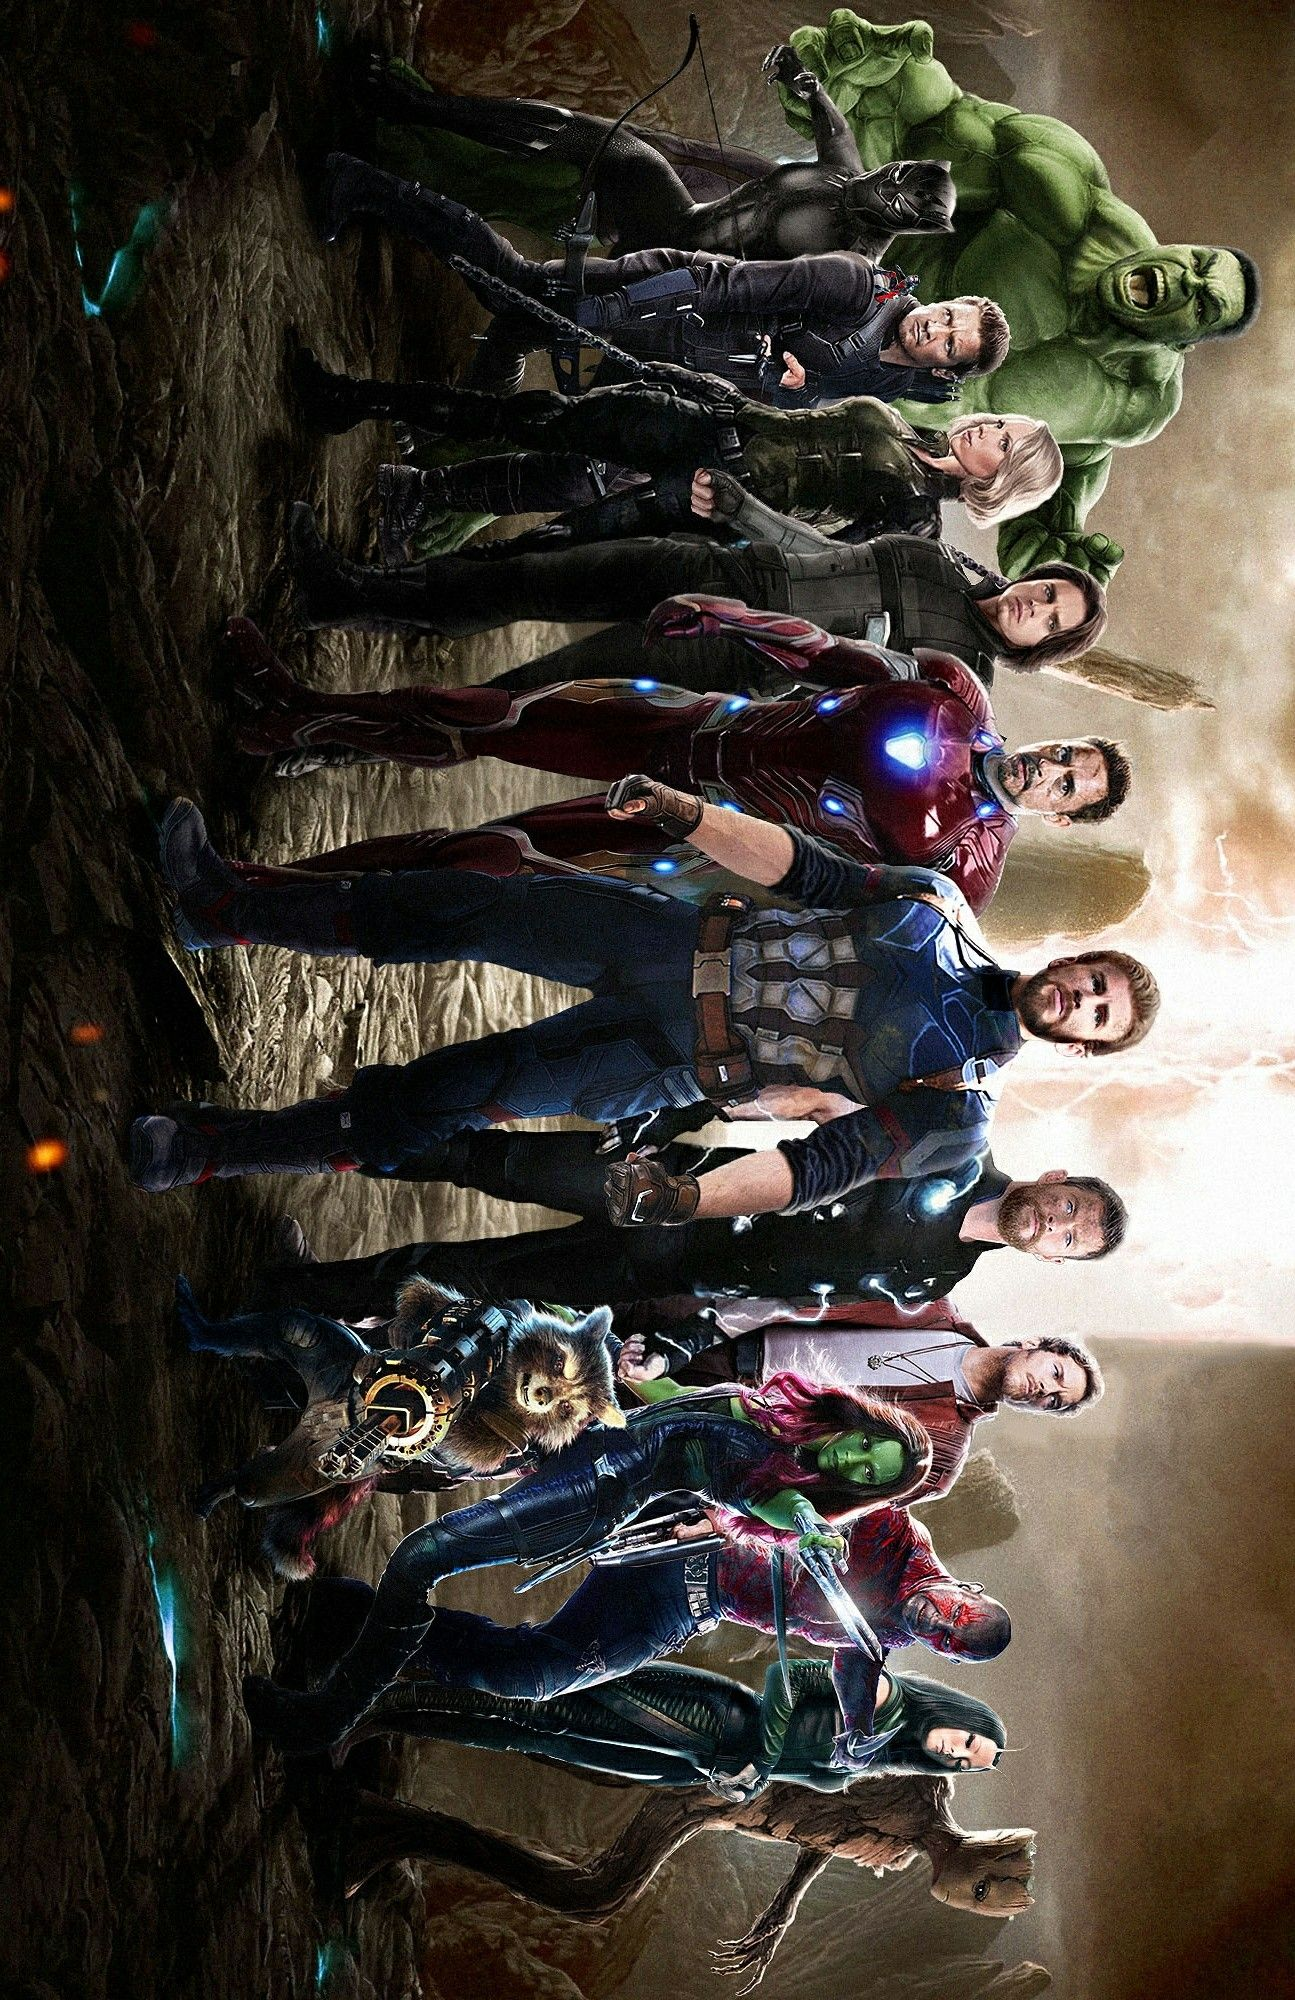 Marvel Avengers Wallpaper : Avenger Endgame Wallpaper iPhone 003f9c4d3c0dc87aab1fc00c74b5c701